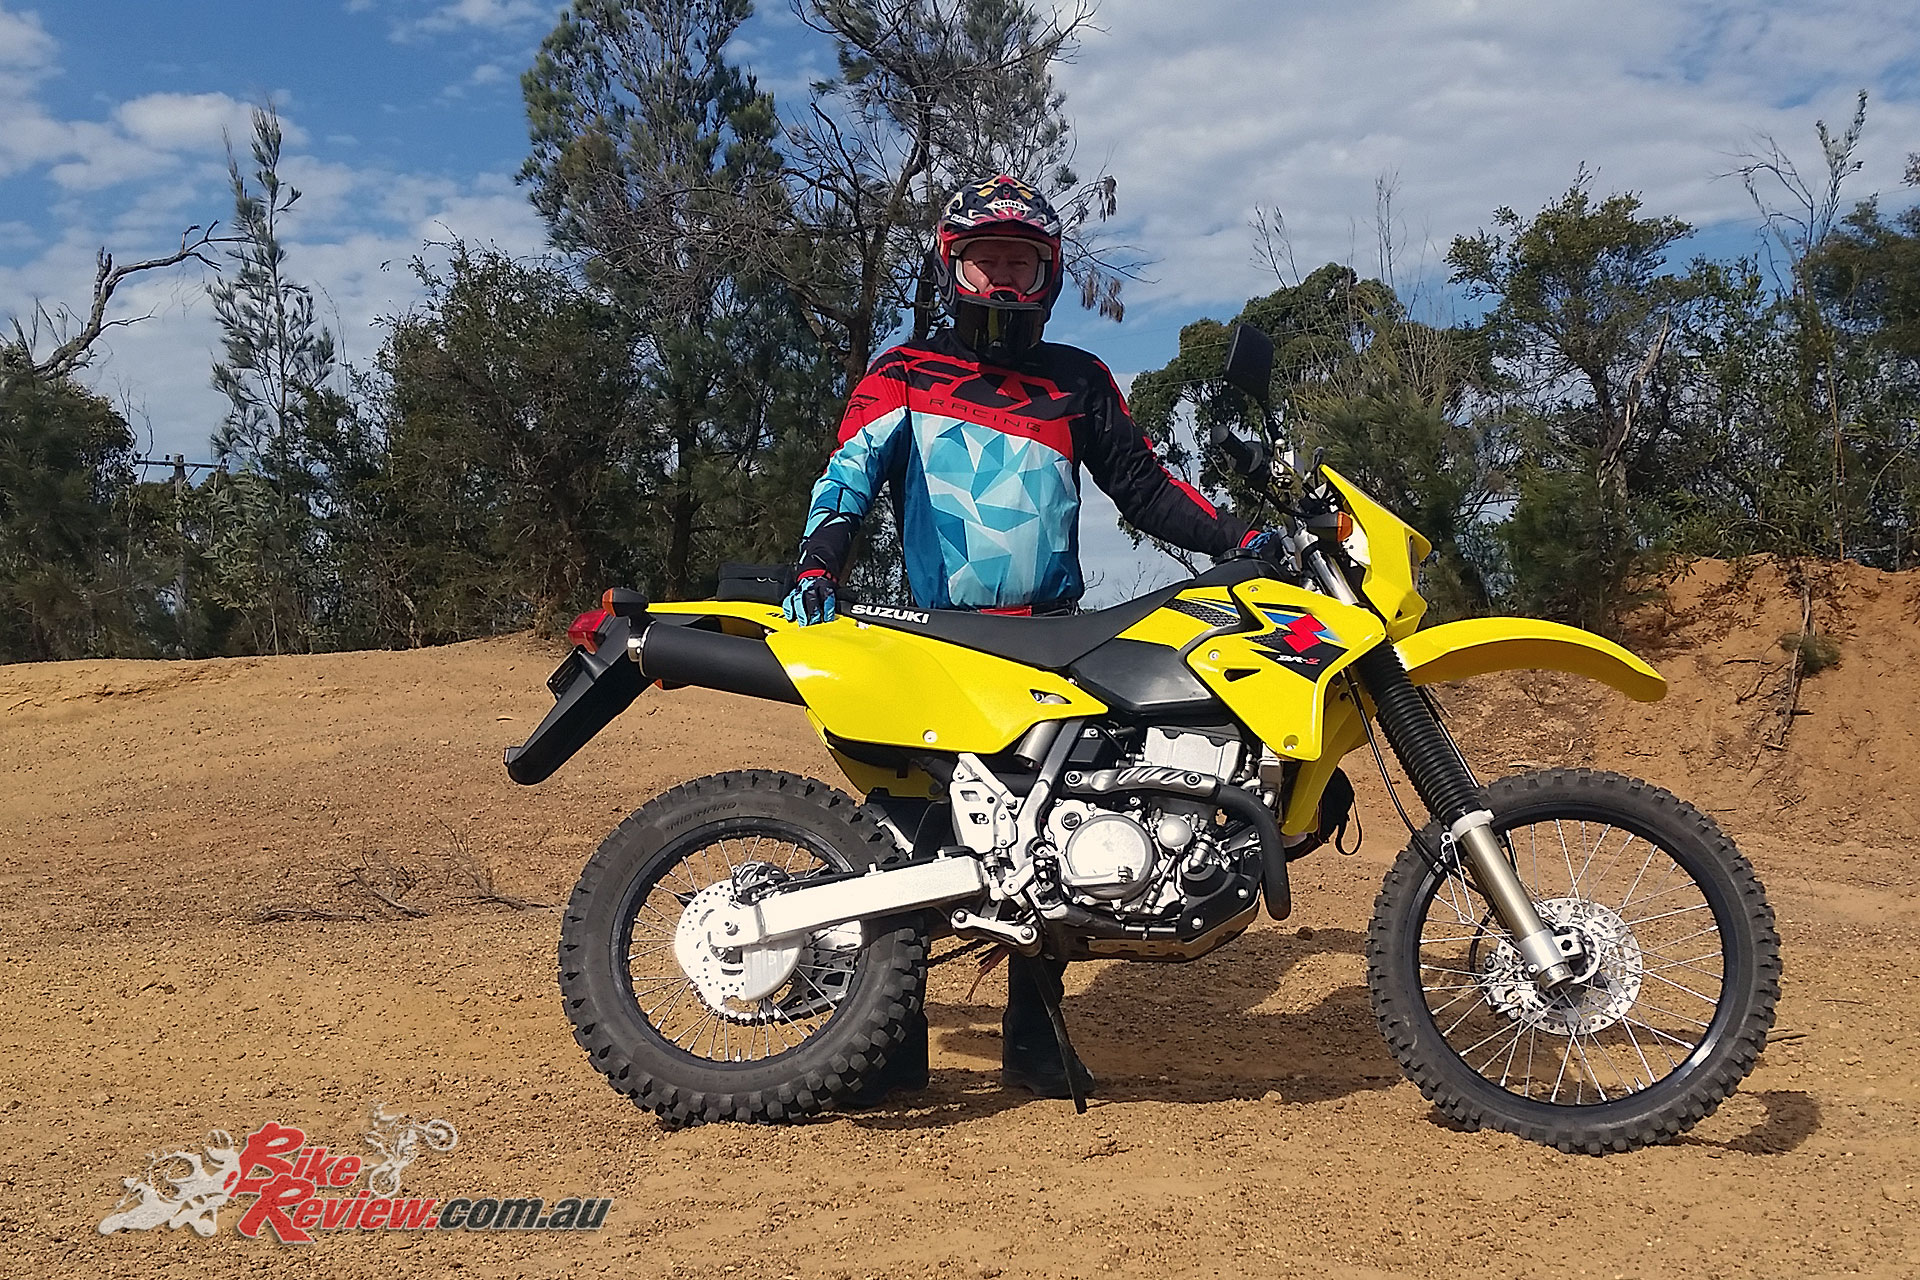 Review: 2018 Suzuki DR-Z400E - Bike Review